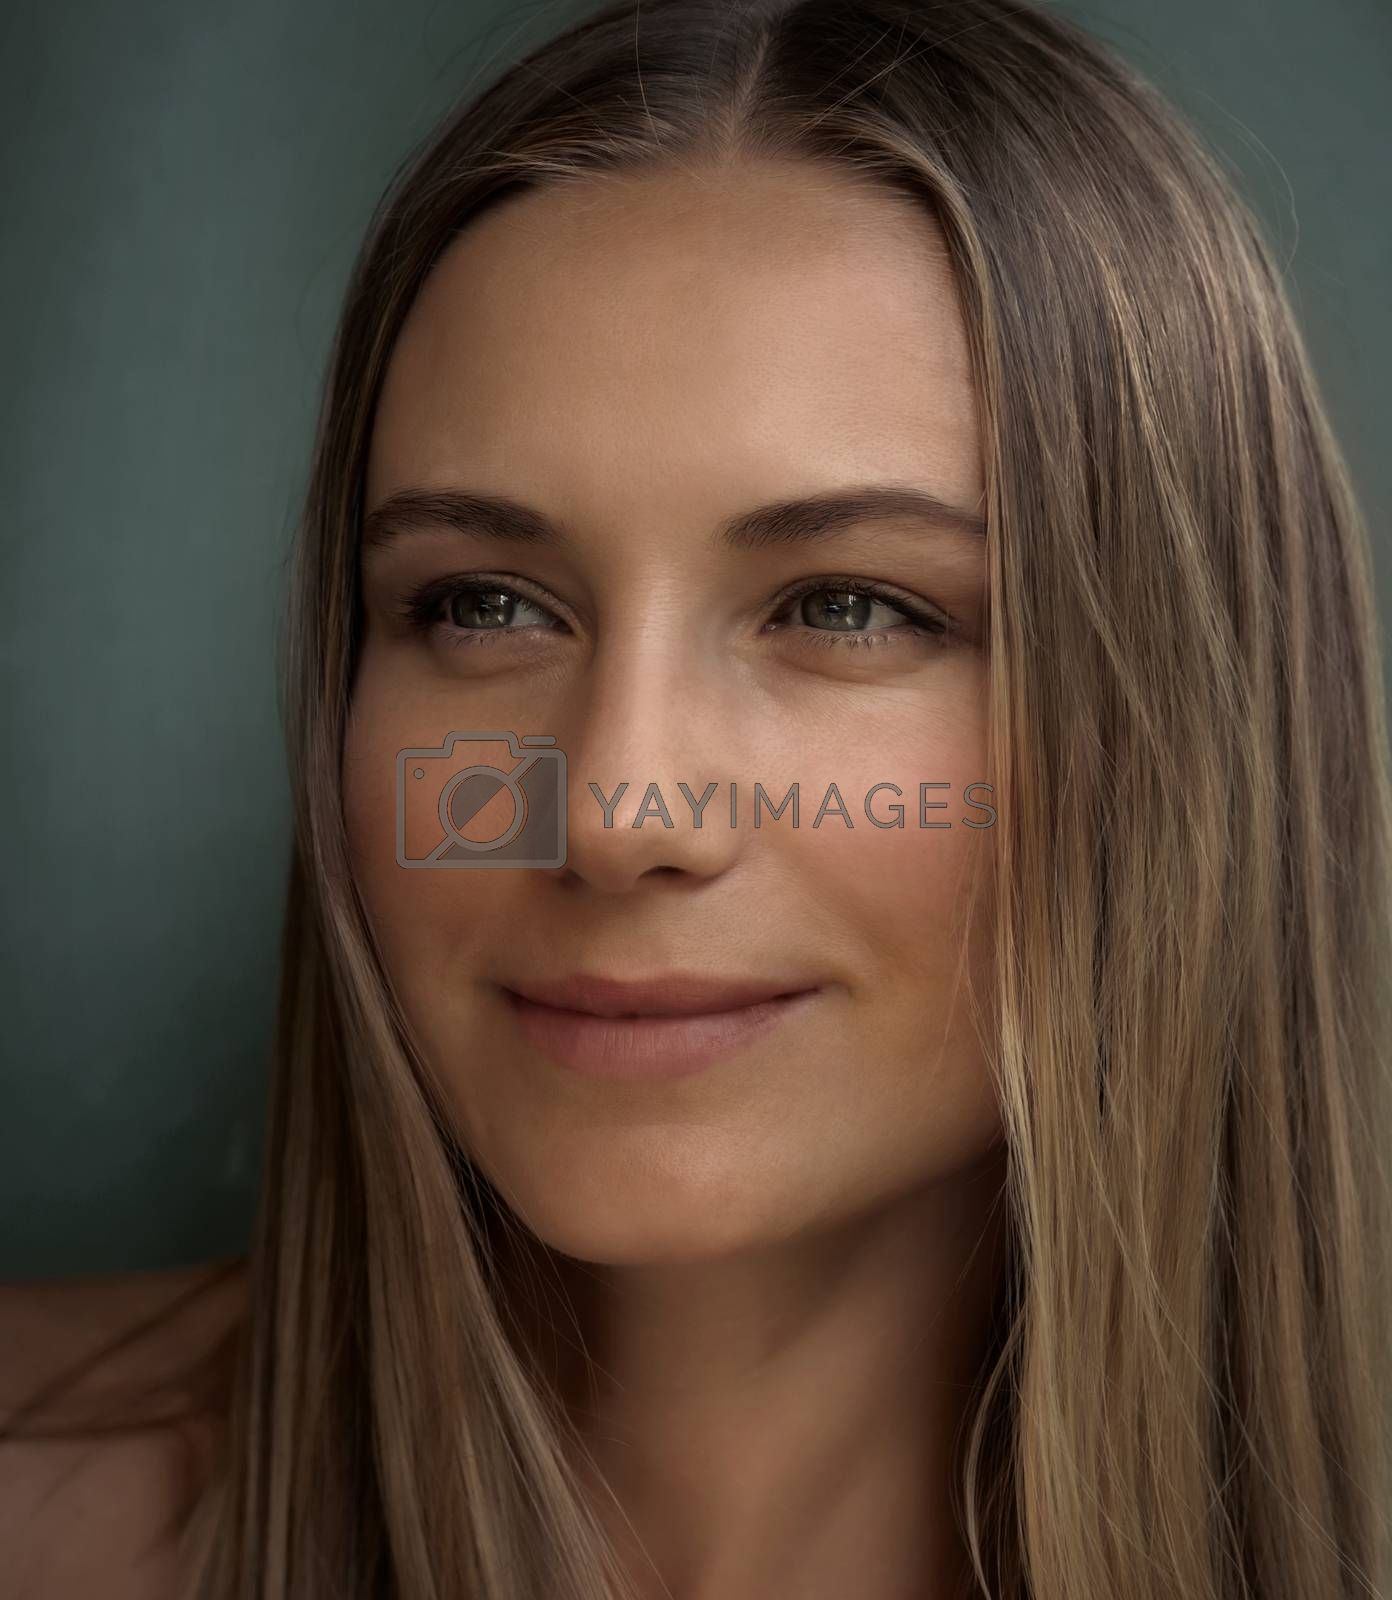 Closeup Authentic  Portrait of a Beautiful Young Woman. Genuine Beauty of an Attractive Female without Makeup and Undyed Hair. Real People.